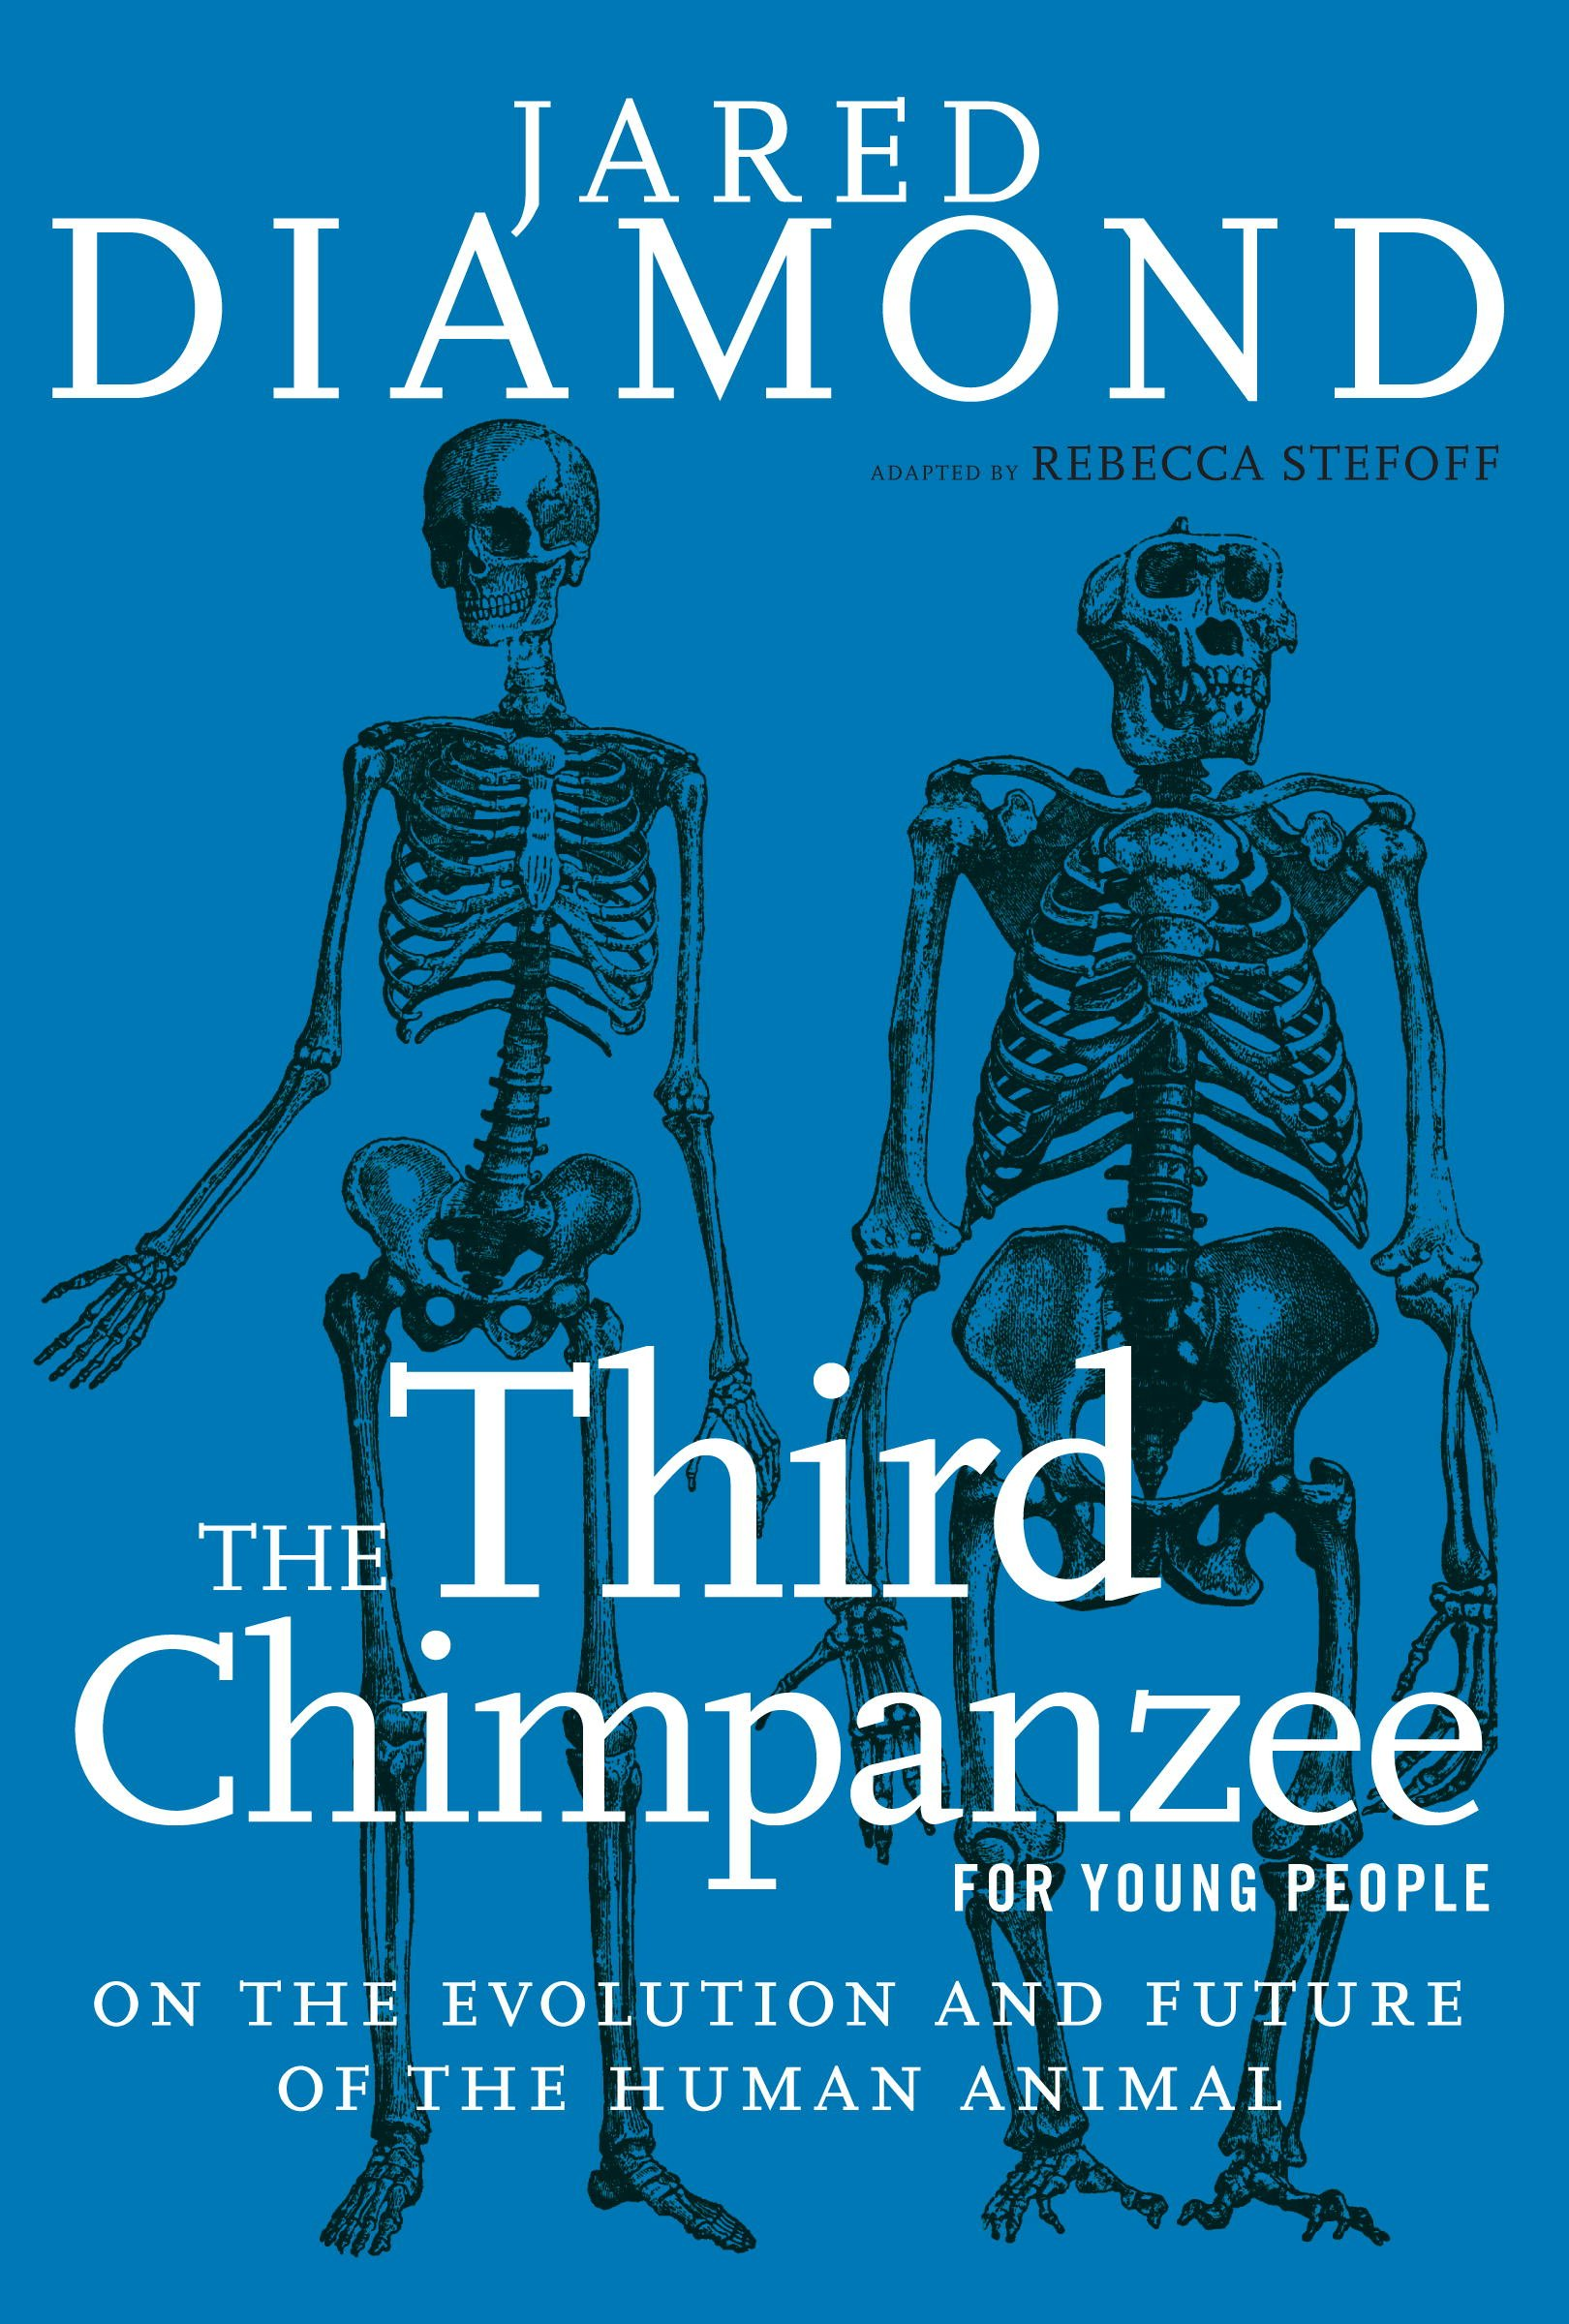 Image OfThe Third Chimpanzee For Young People: On The Evolution And Future Of The Human Animal (For Young People Series)